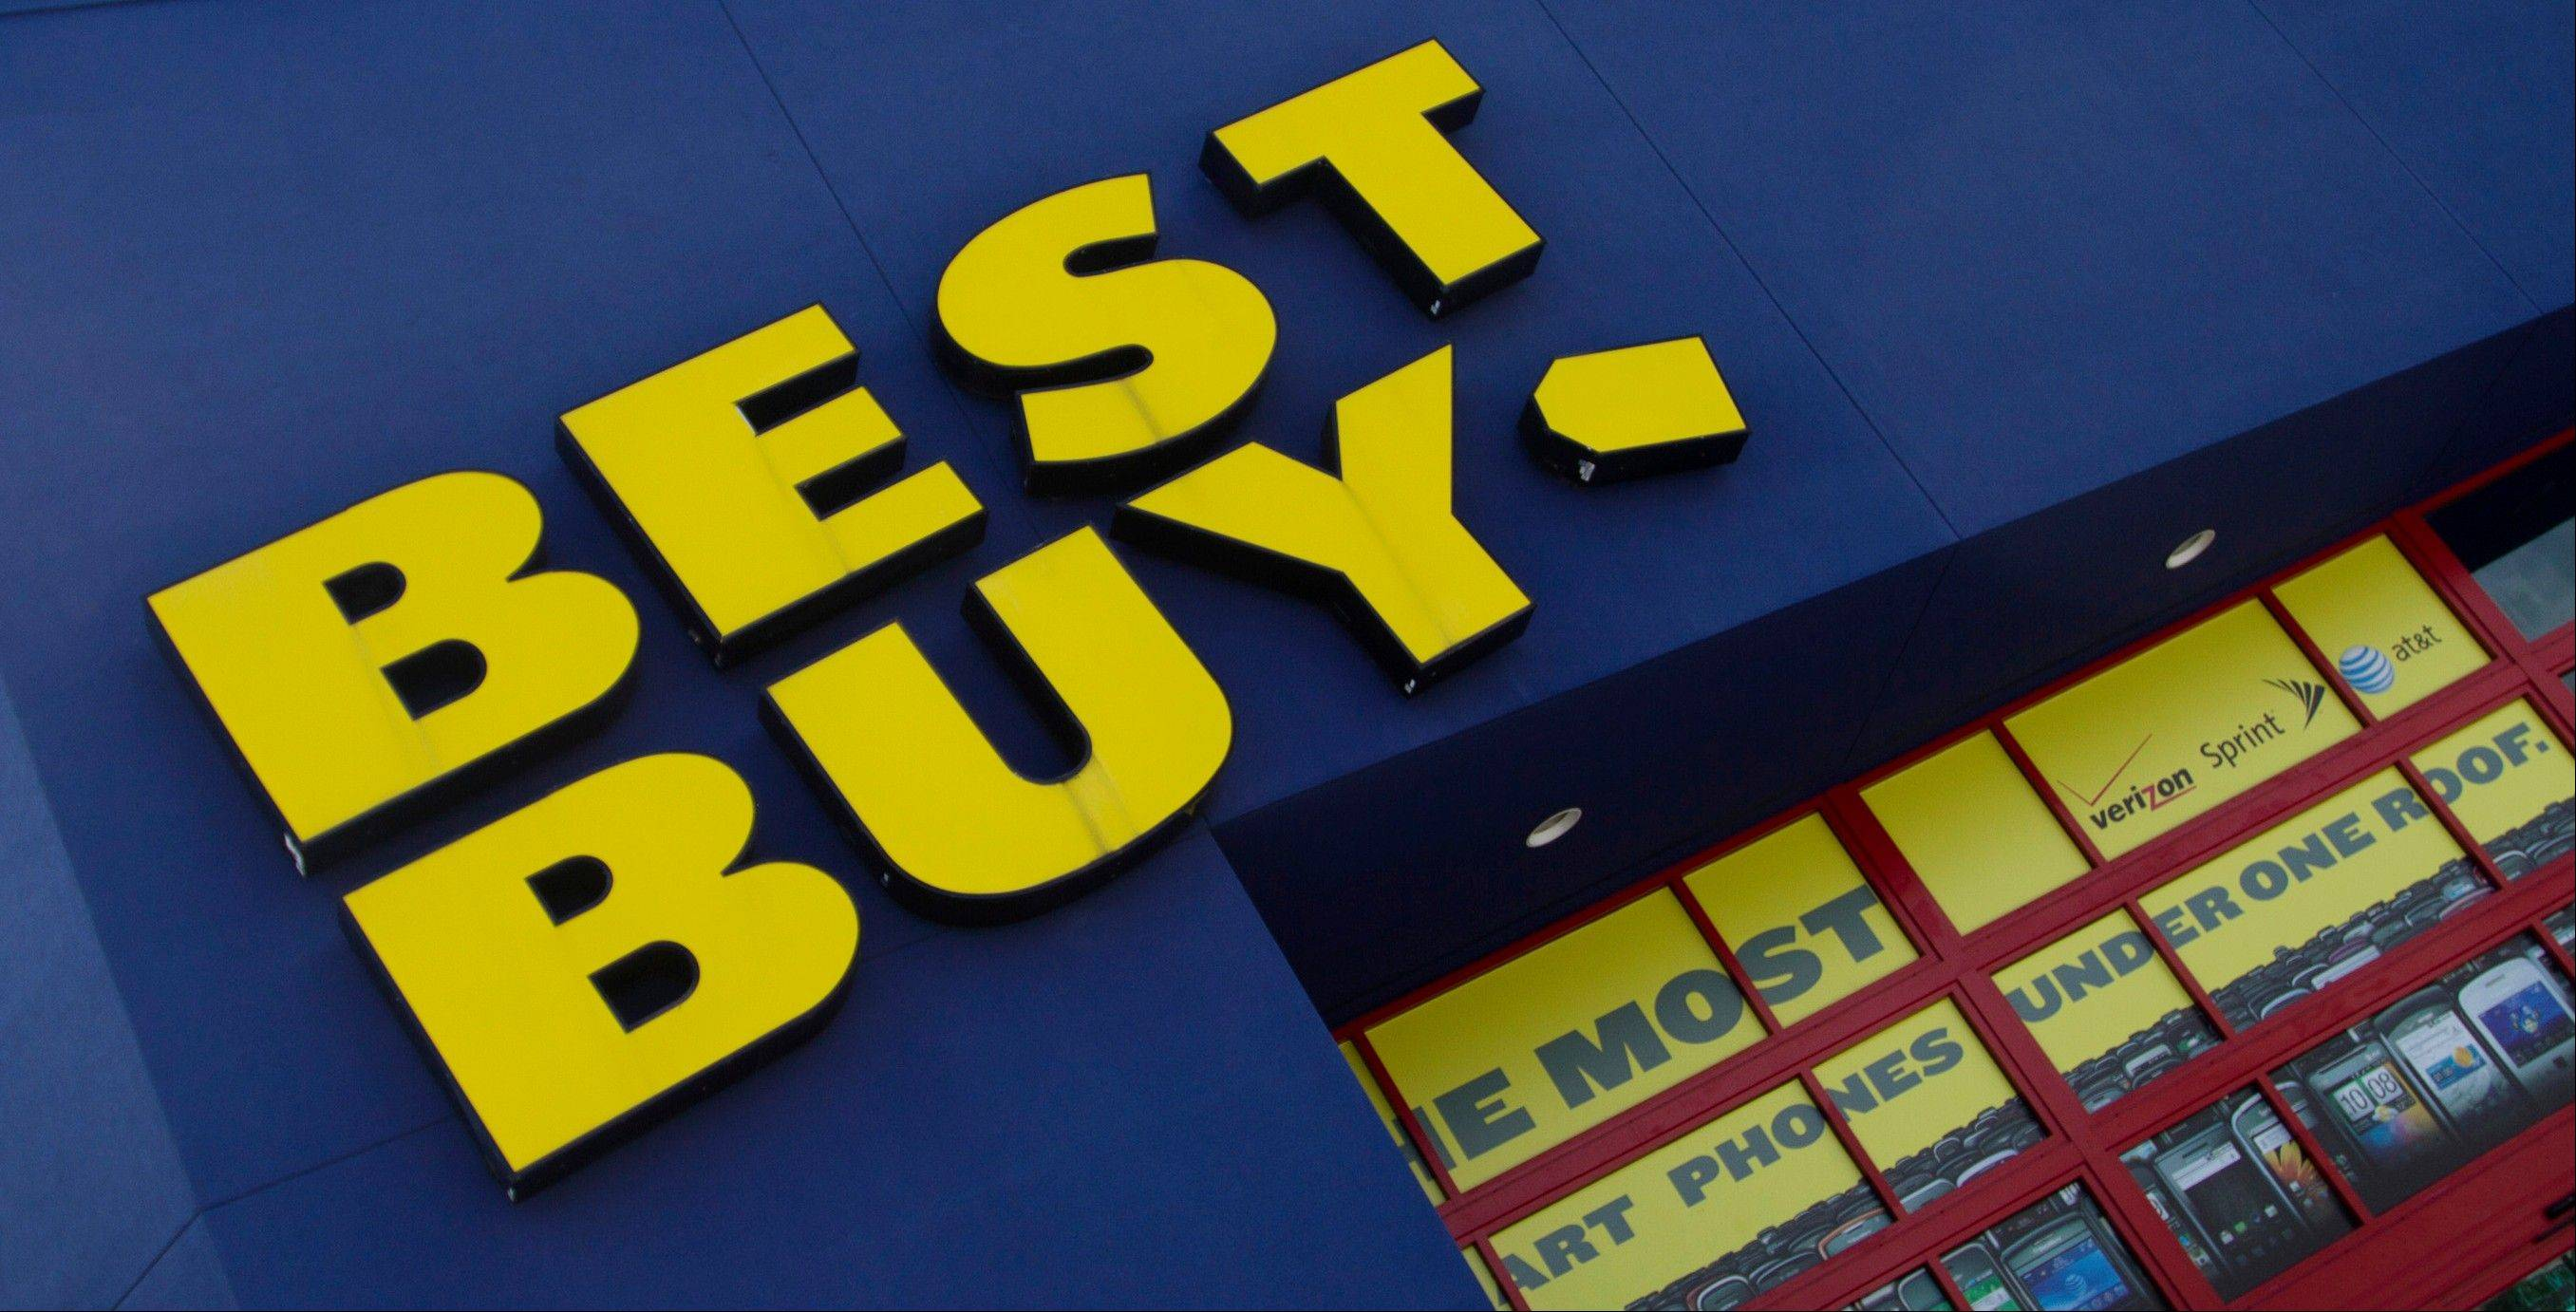 Best Buy said Thursday that a key sales barometer fell during the holiday shopping season, stung partly by weakness in the U.S. and a retail environment heavy on promotions. Its stock dropped more than 28 percent in premarket trading.